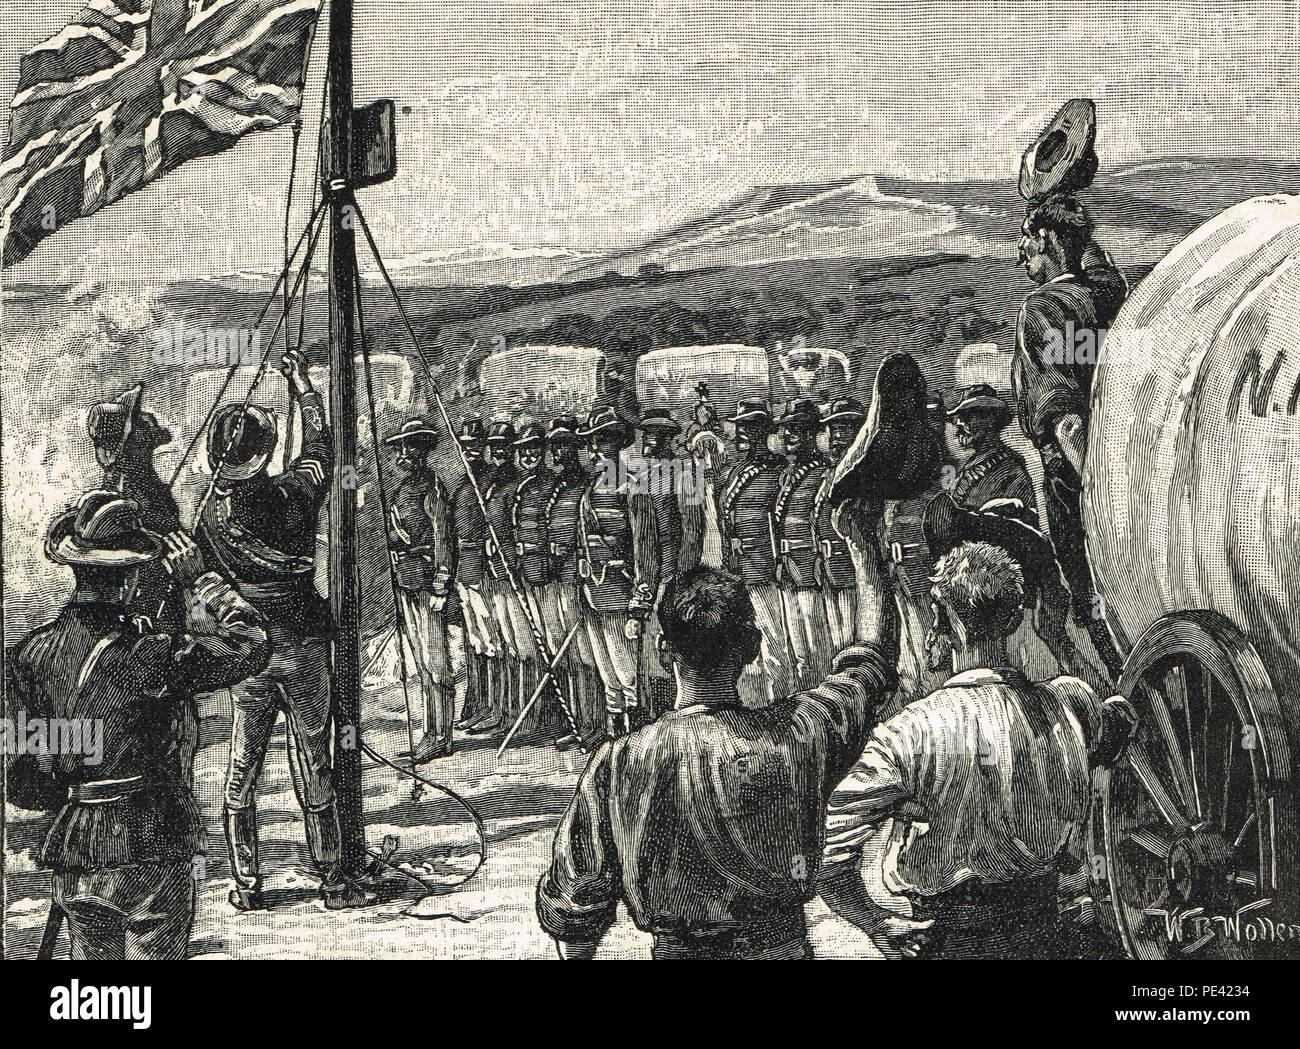 The Pioneer Column in Mashonaland in 1890. A force raised by Cecil Rhodes' British South Africa Company to annexe the territory of Mashonaland, later part of Southern Rhodesia, now Zimbabwe. - Stock Image